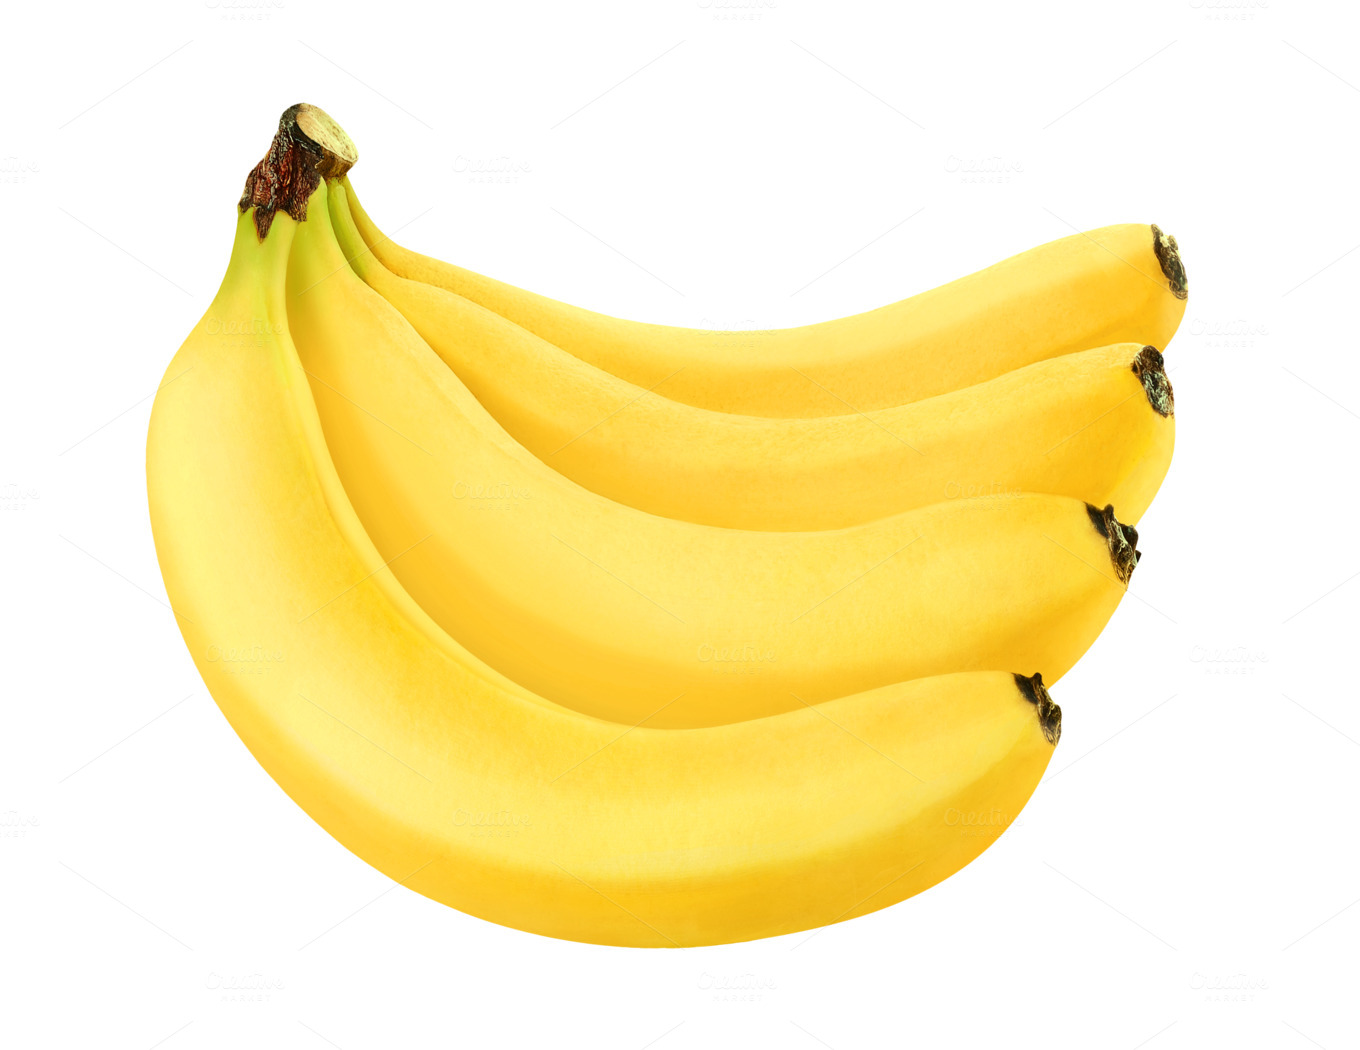 Banana on transparent background ~ Food & Drink Photos on ...